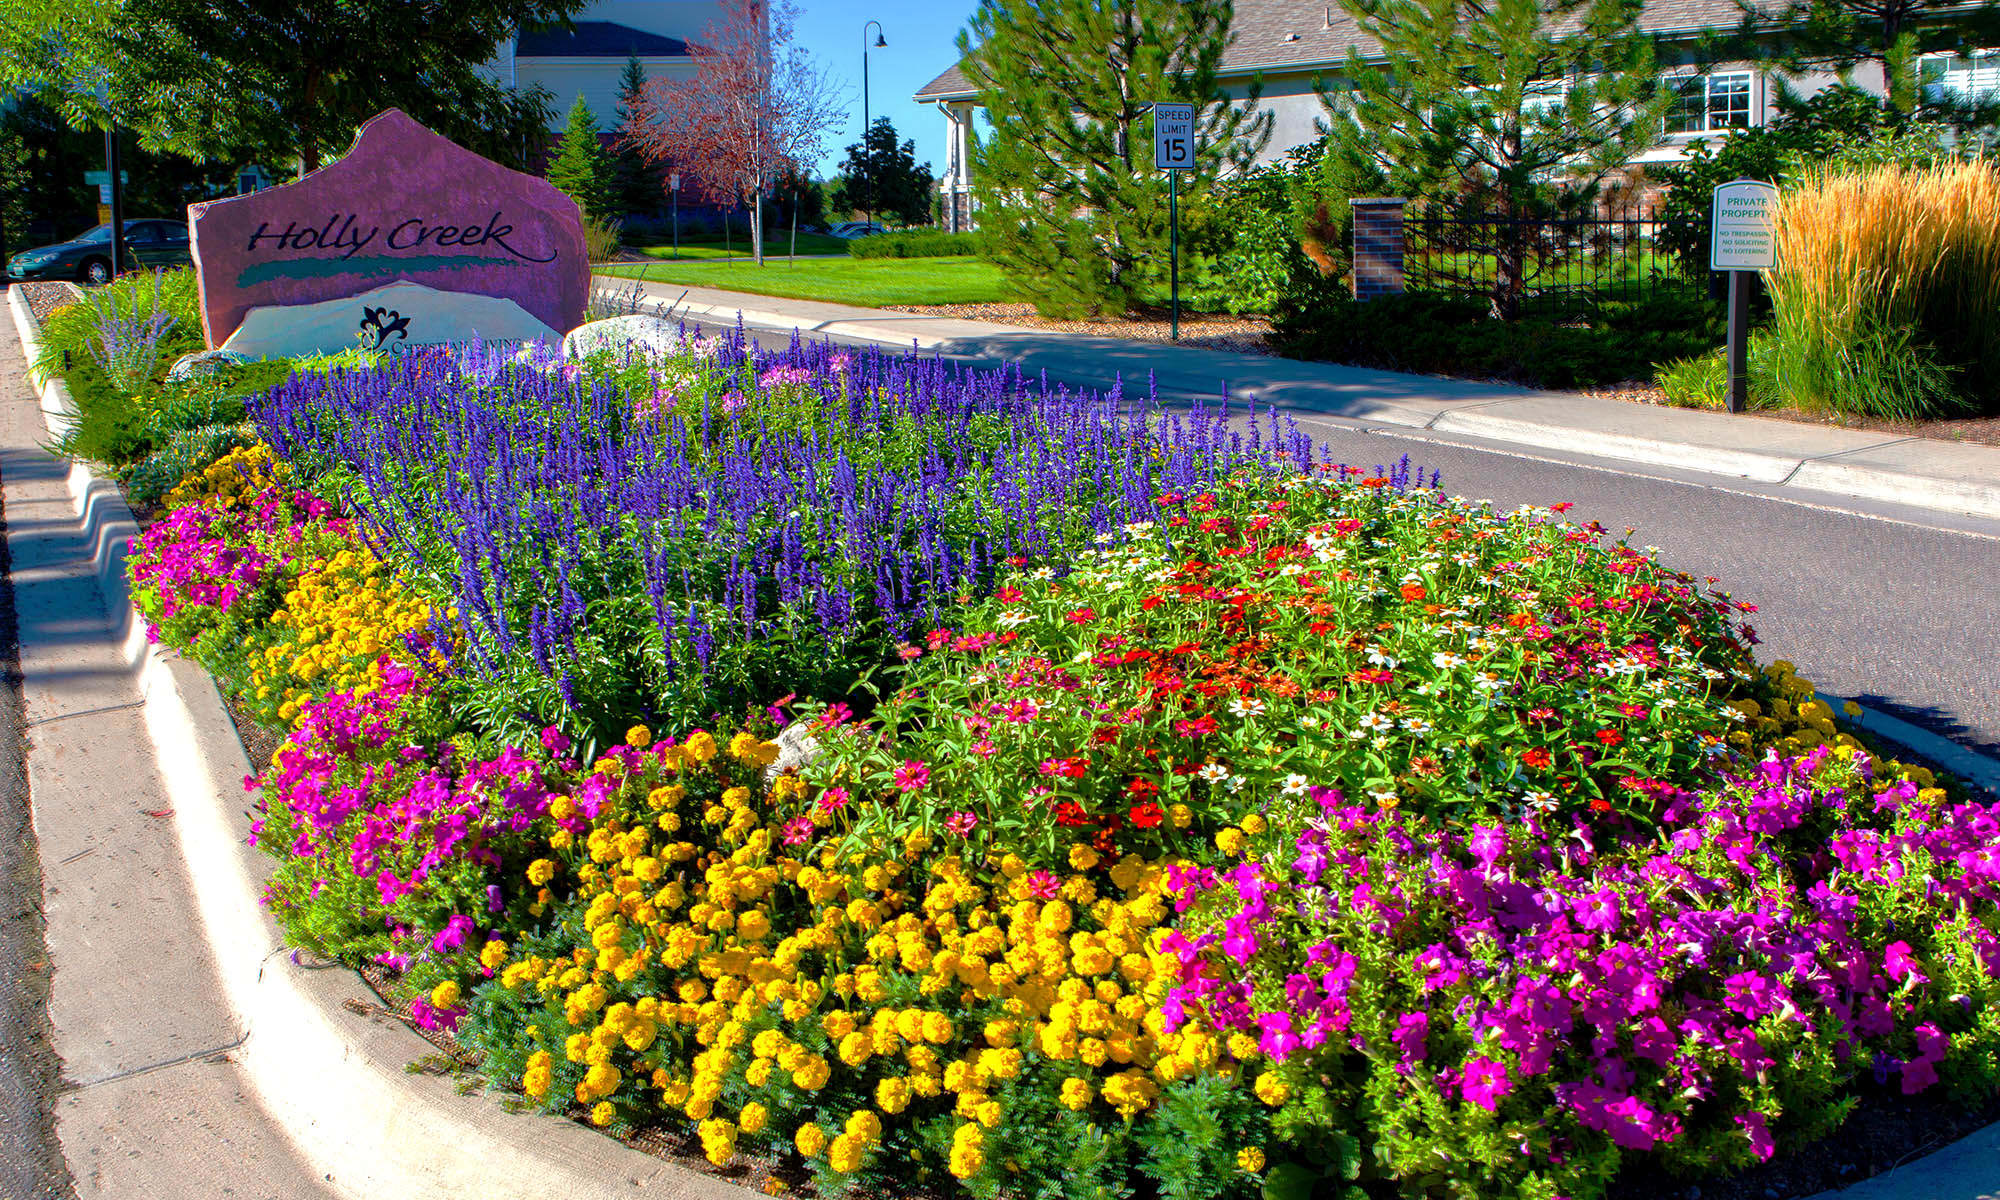 Flowers at Holly Creek Retirement Community